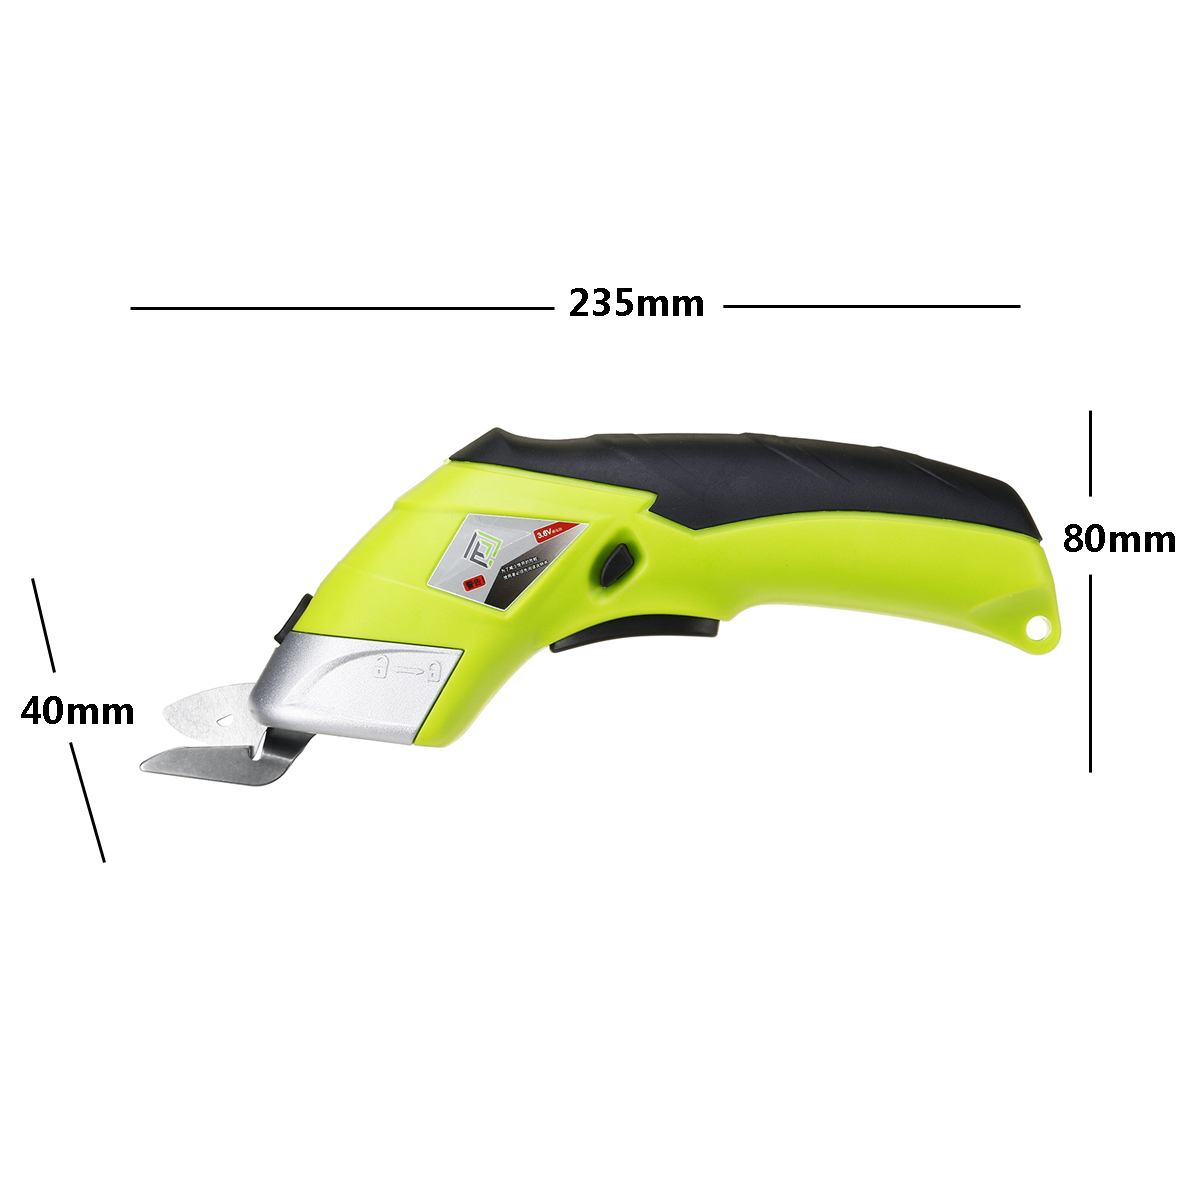 Multipurpose 110V-220V Electric Scissors Cordless Chargeable Fabric Sewing Scissors Handheld